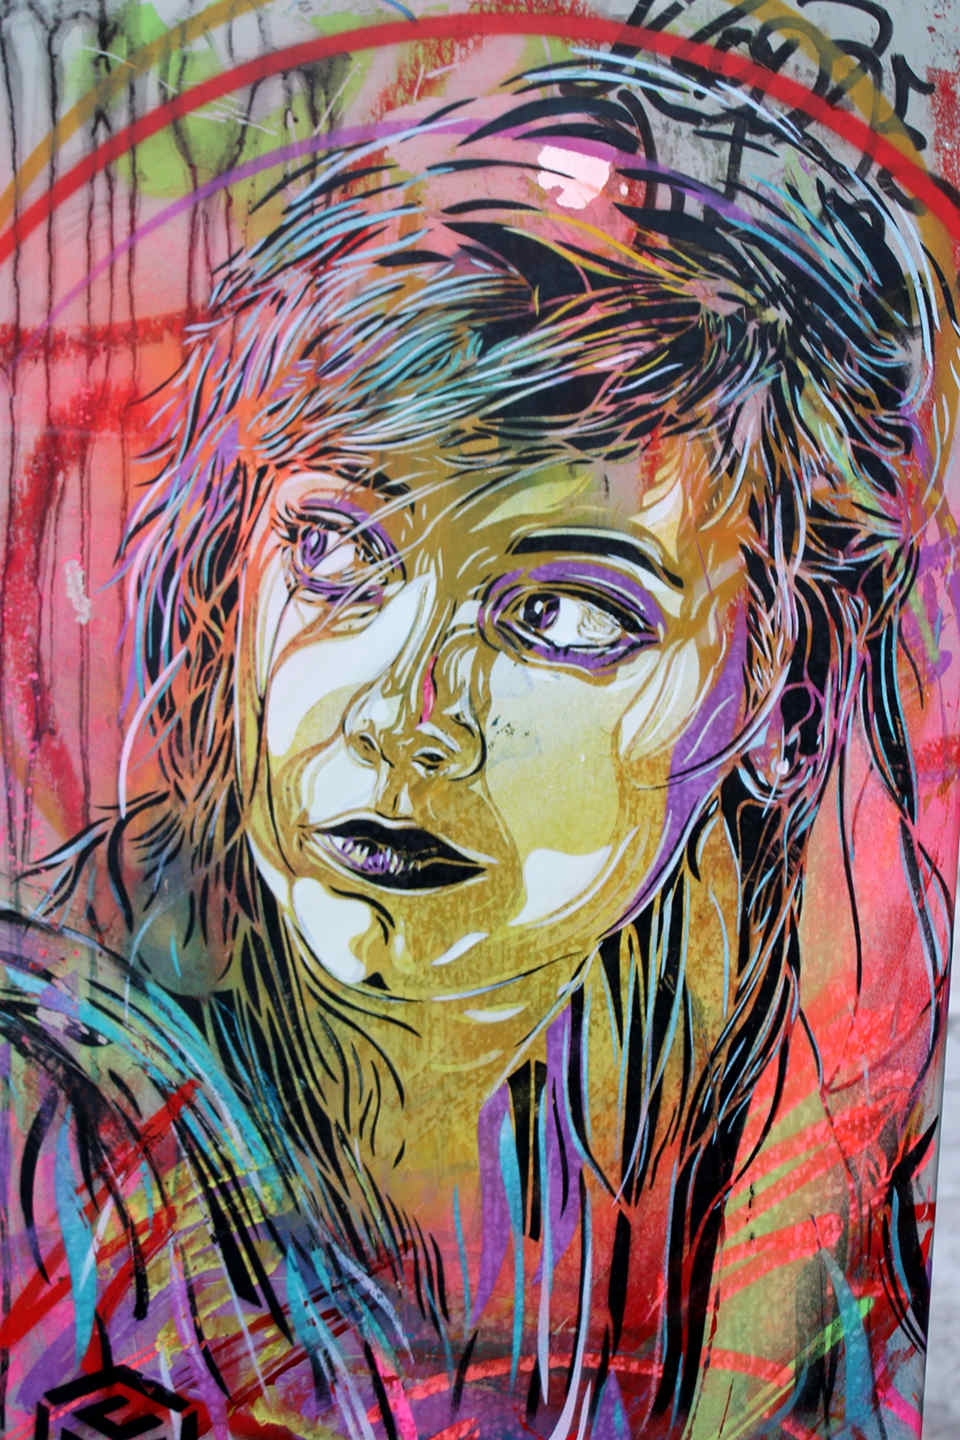 C215 - Street Art Berlin - Close UP